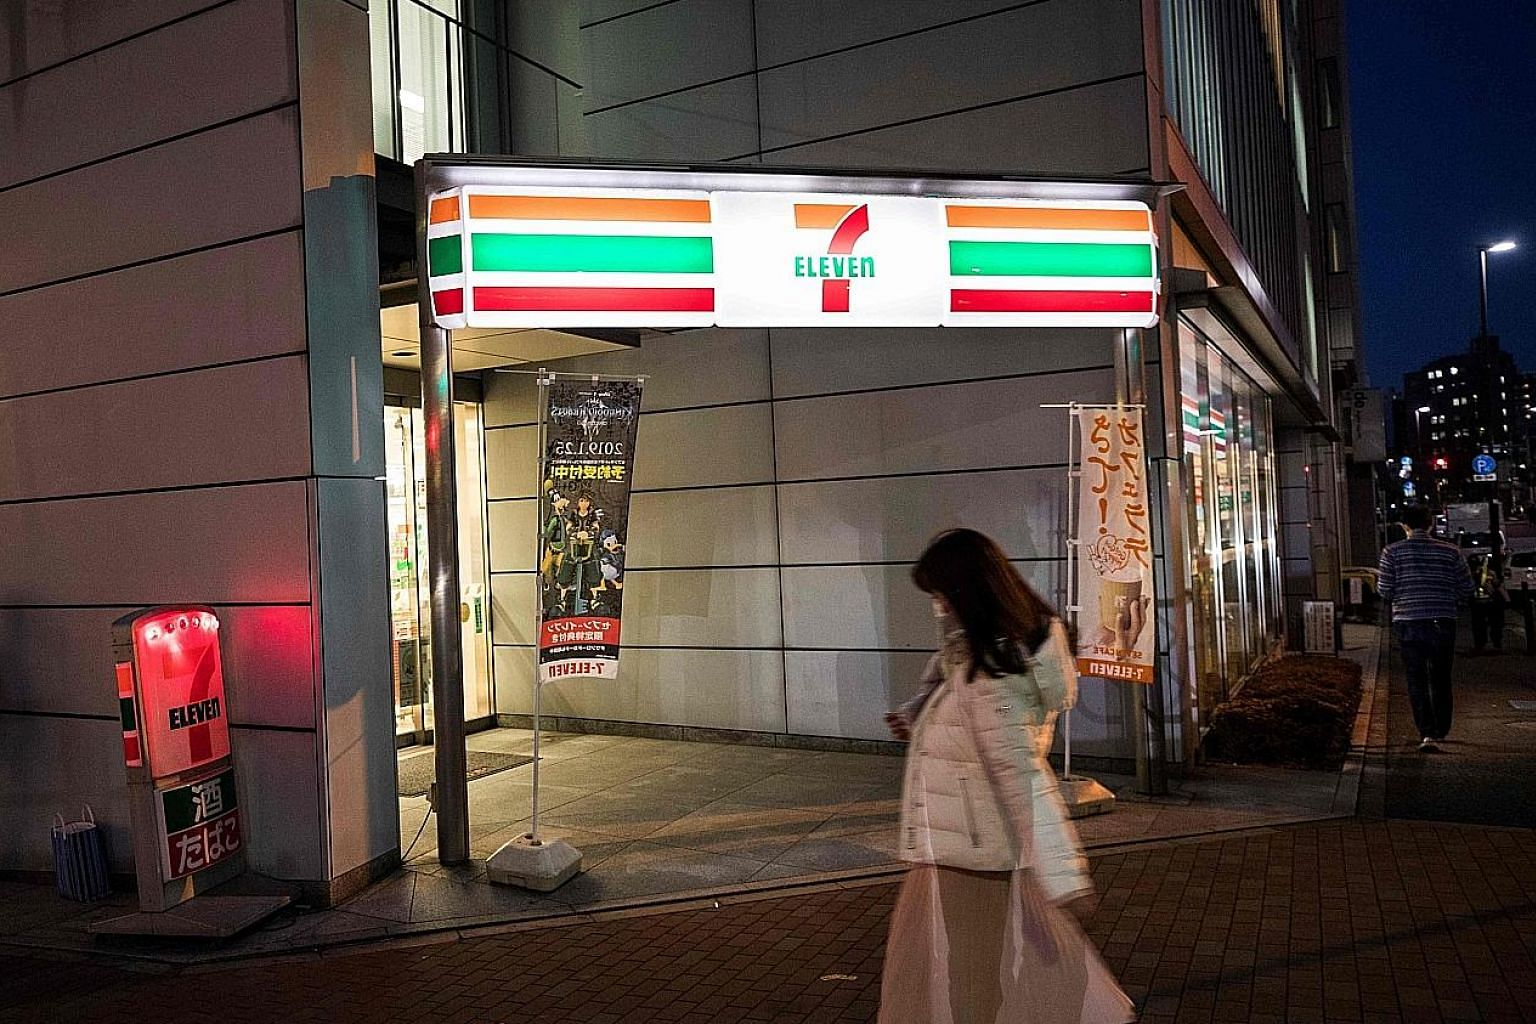 A 7-Eleven convenience store in Tokyo. Store owners are finding it increasingly hard to hire enough workers. Many owners say they have to work long hours themselves to keep their stores open 24 hours.